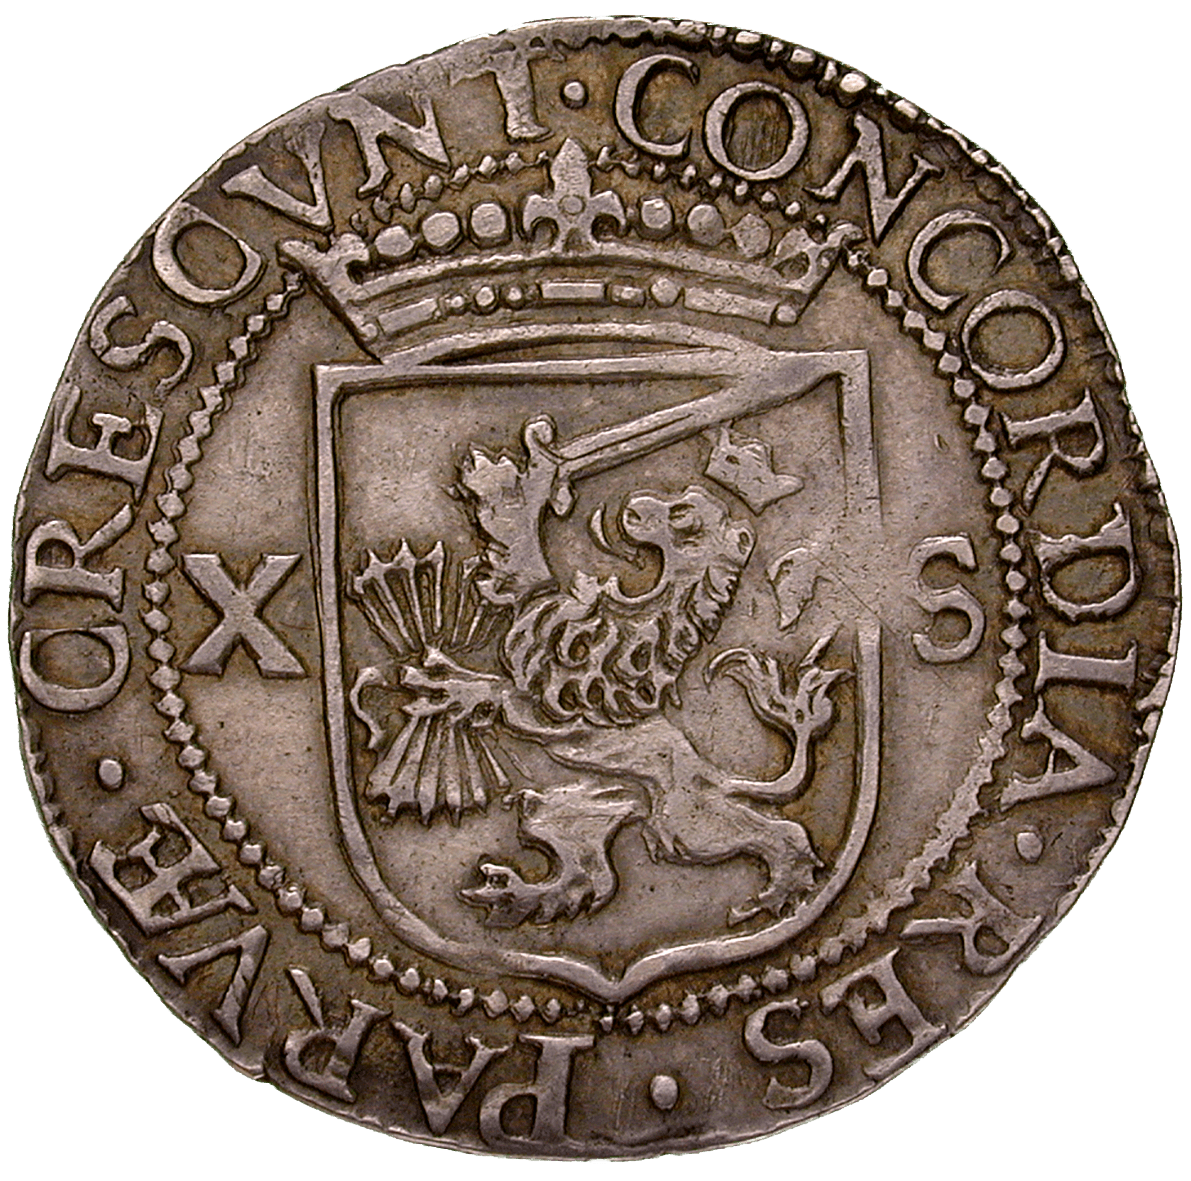 Netherlands, Province of Friesland, Shilling at 20 Groot 1607 (reverse)